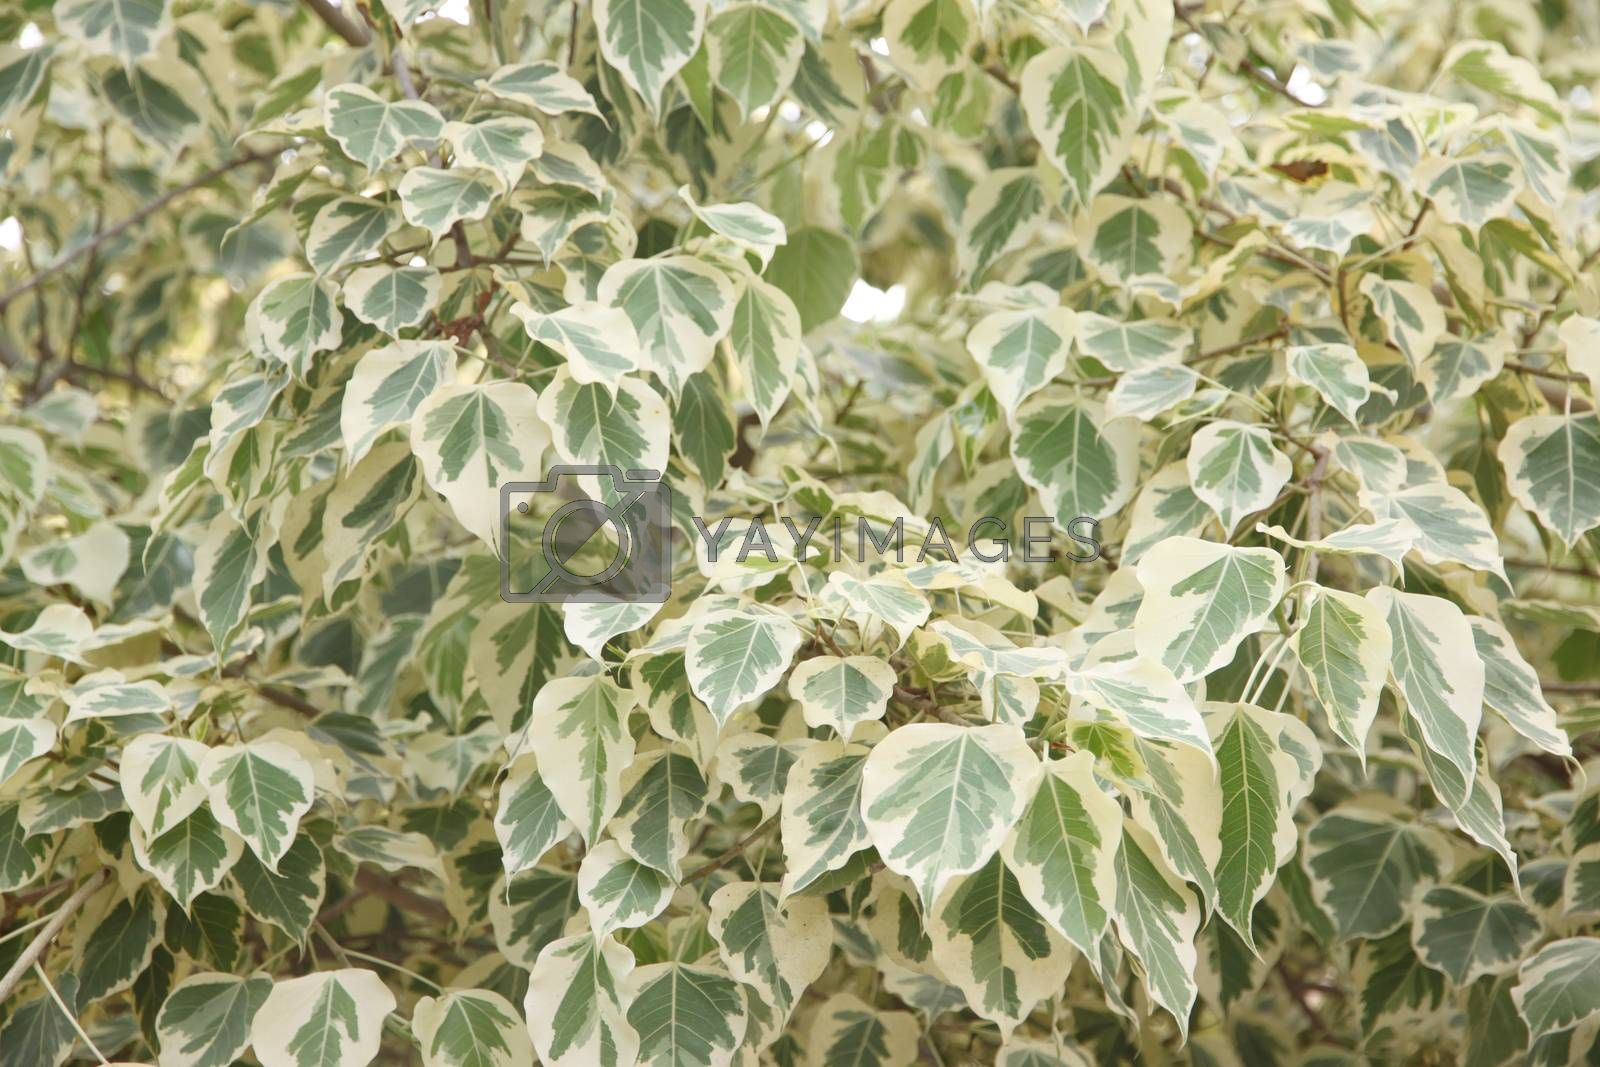 Euonymus fortunei,The tree of two color on leaves. by meepoohyaphoto